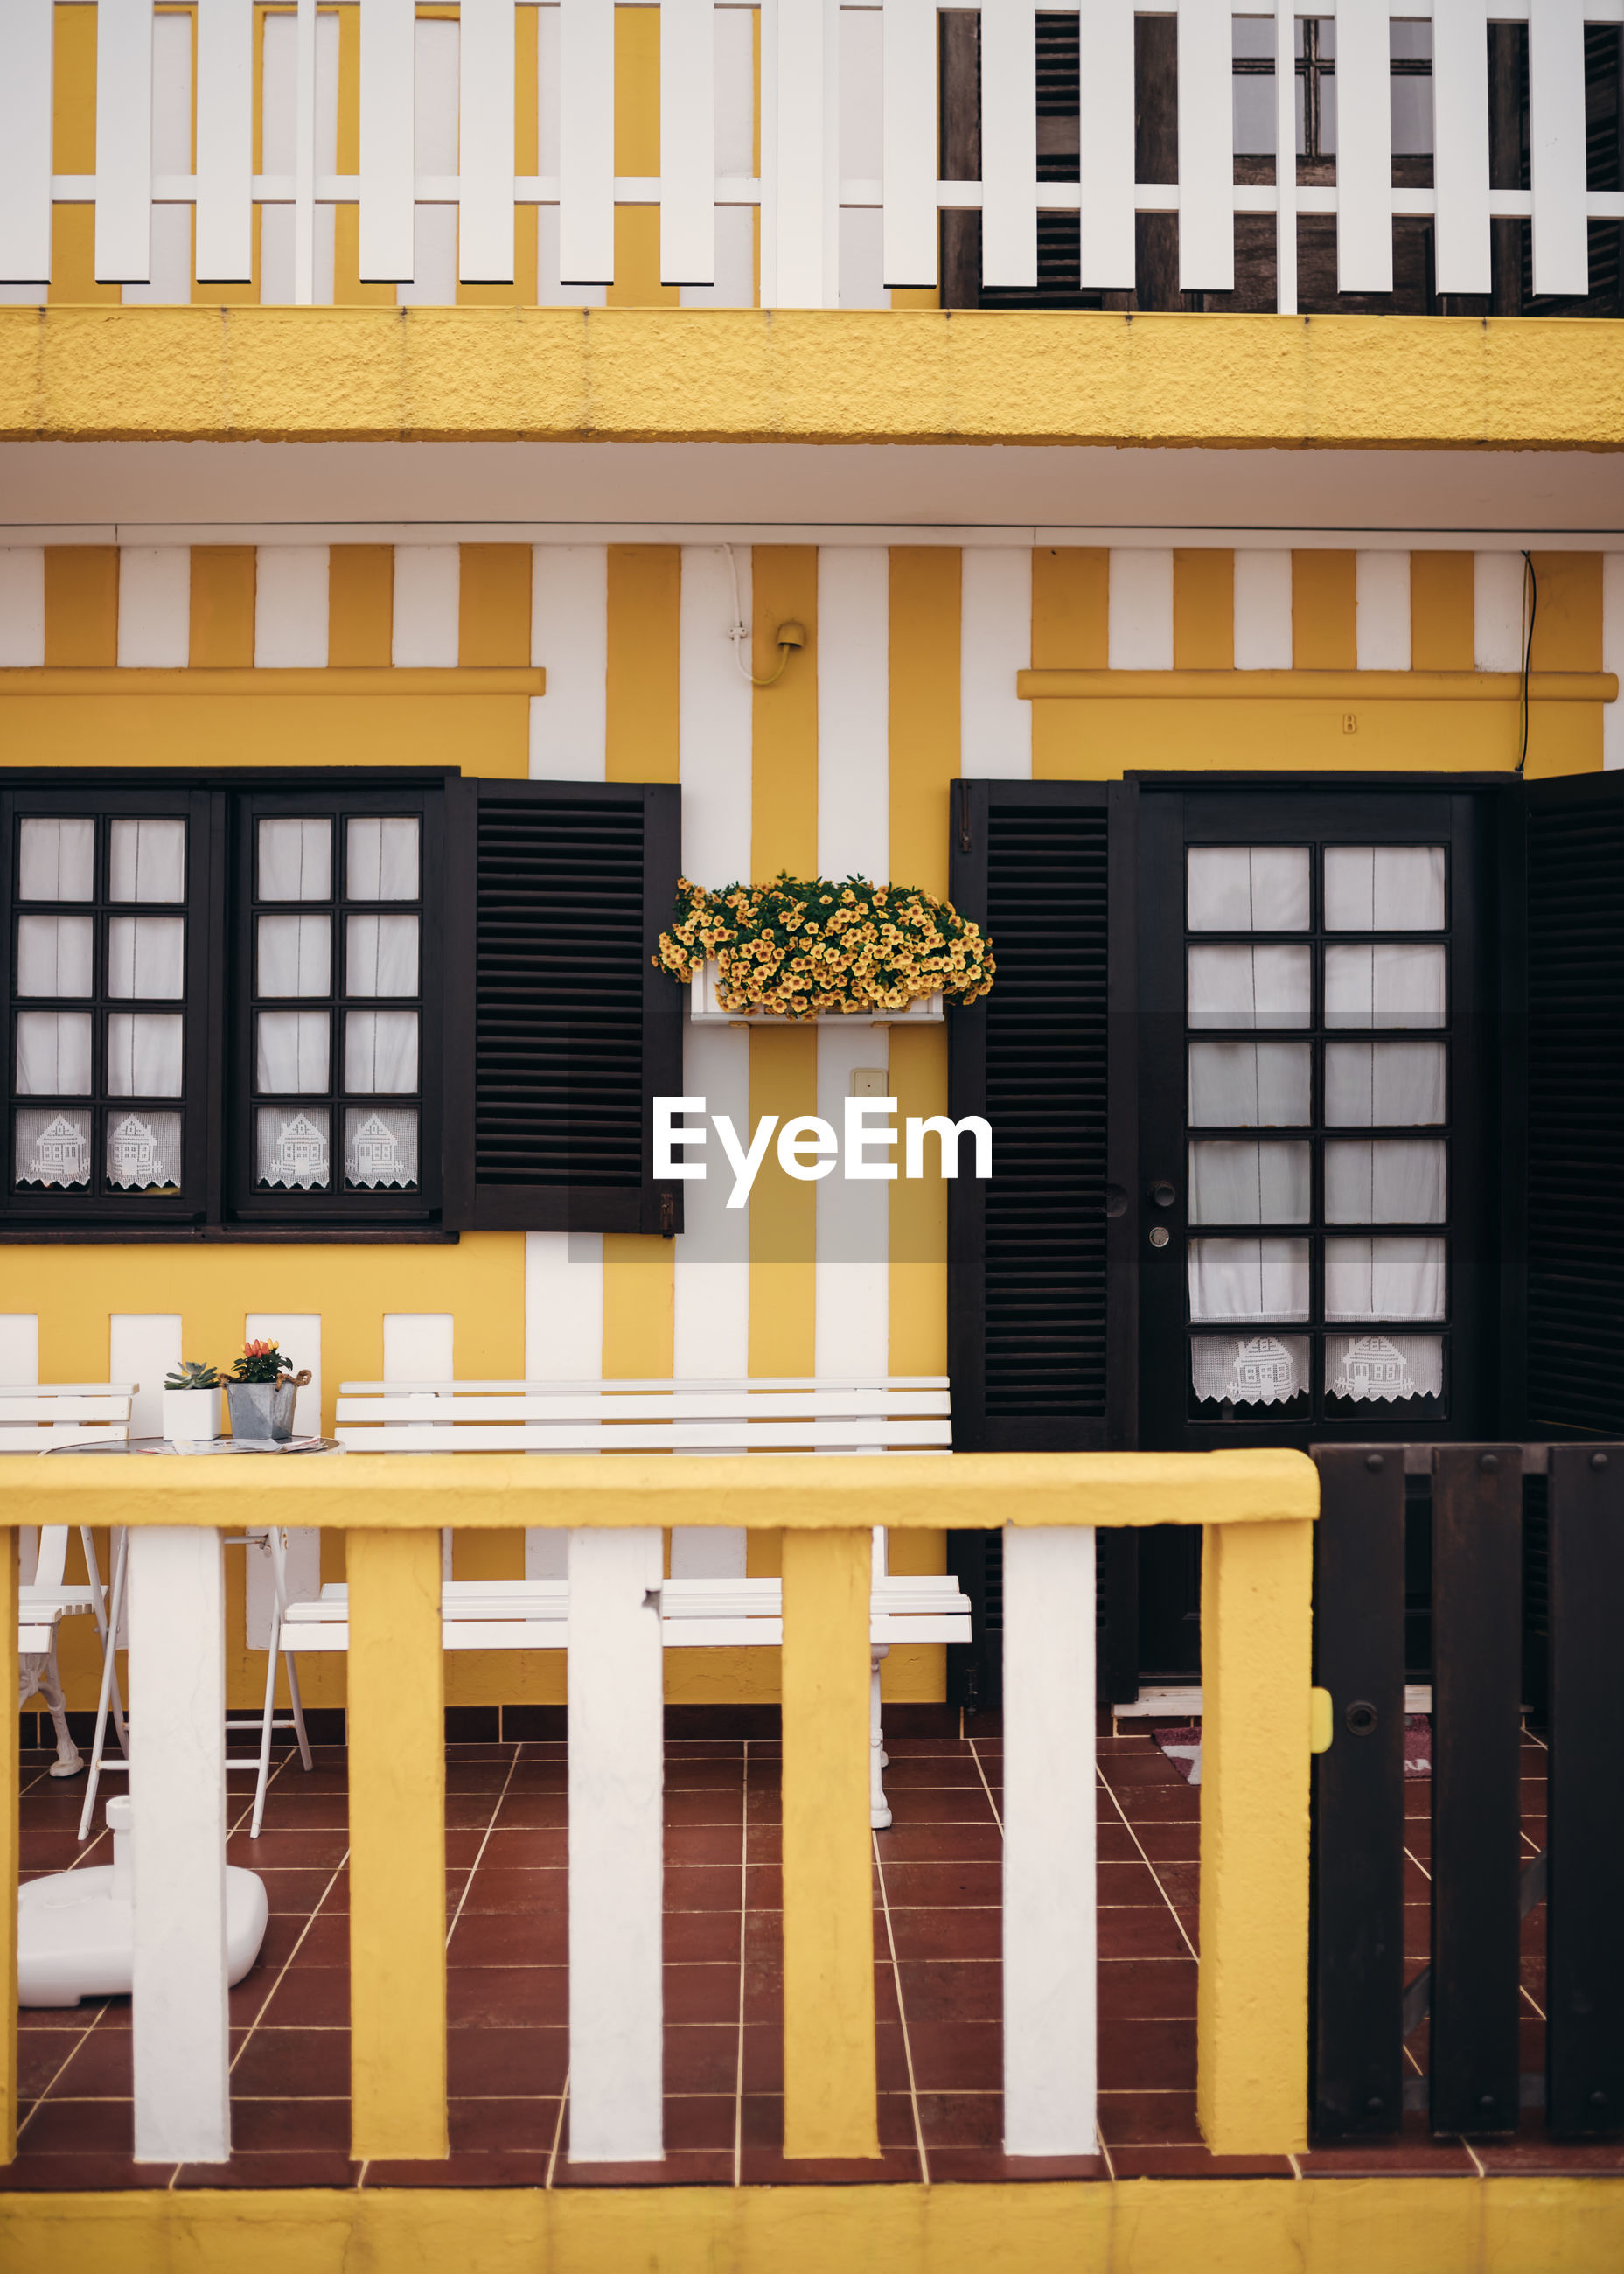 Potted plants on balcony of yellow striped building